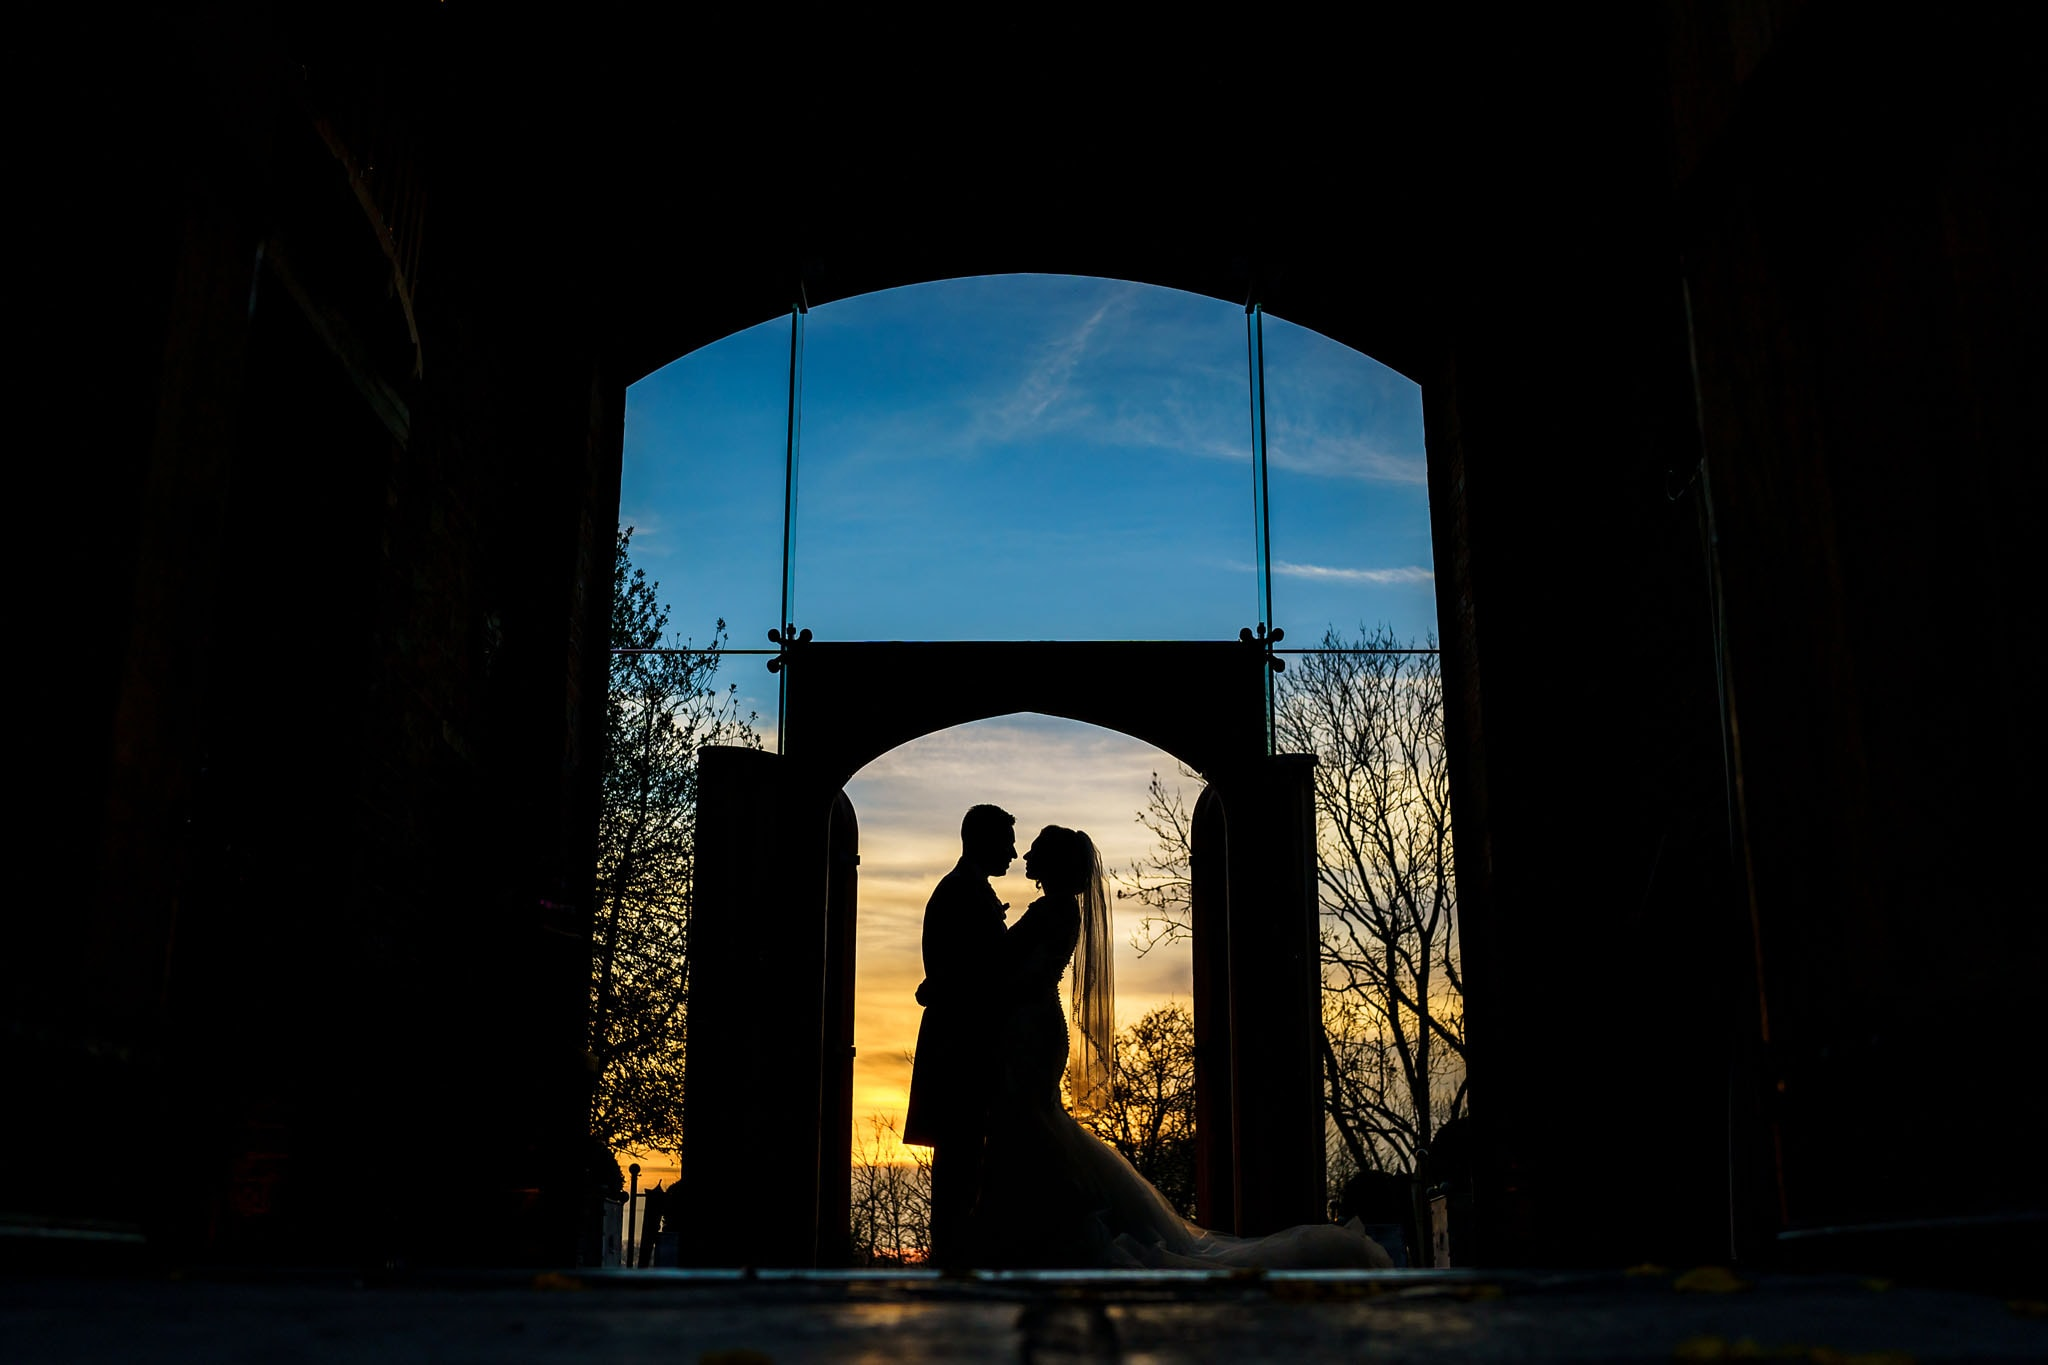 silhouette of the bride and groom during sunset at Shustoke Barn